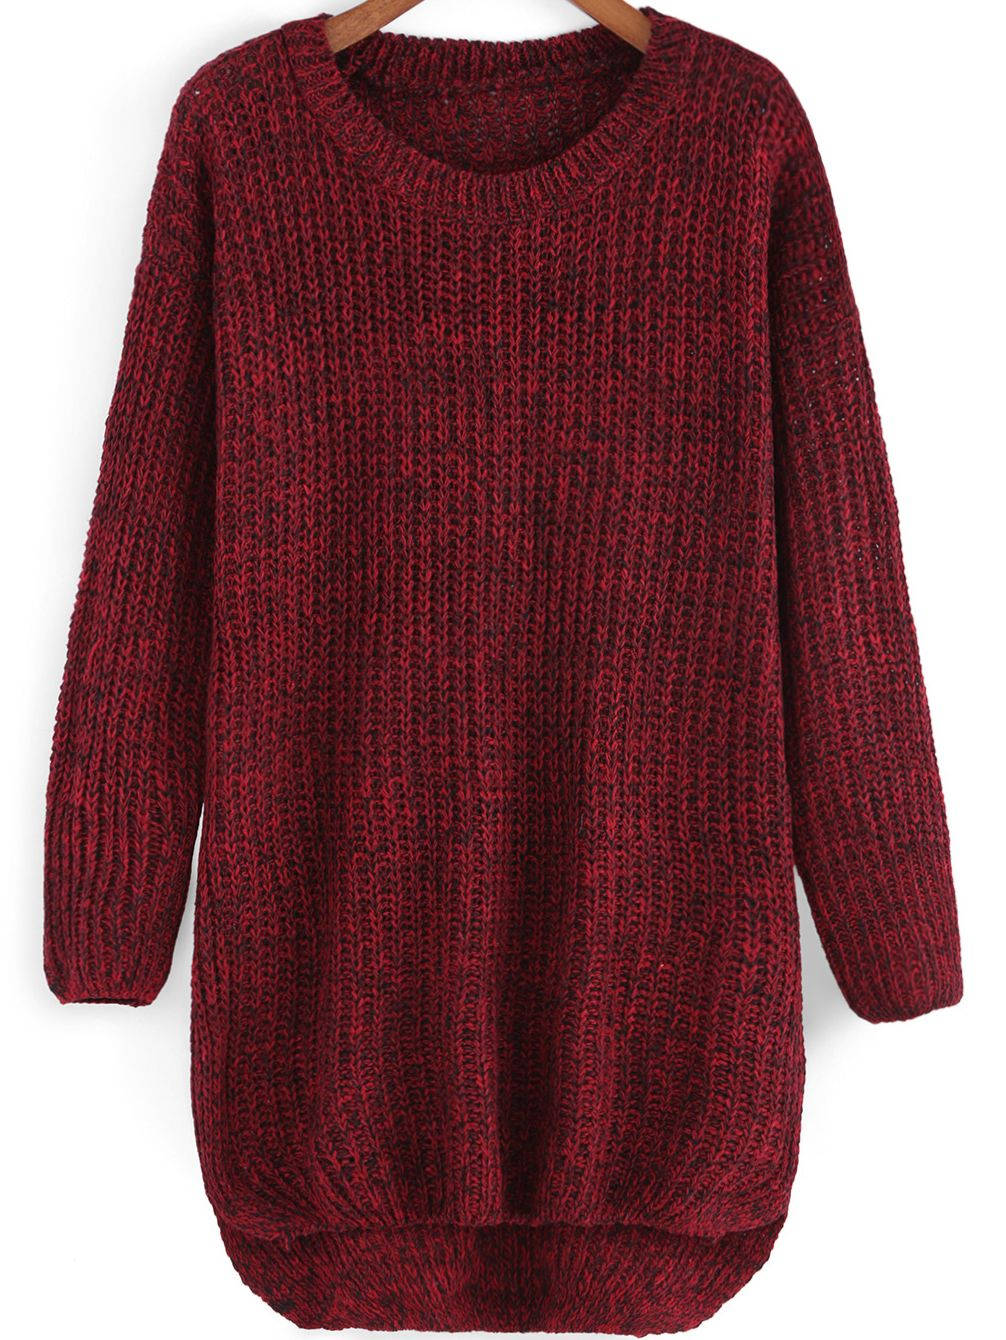 8d604247c32 No way to let me give the warm loose dip hem sweaters away ...